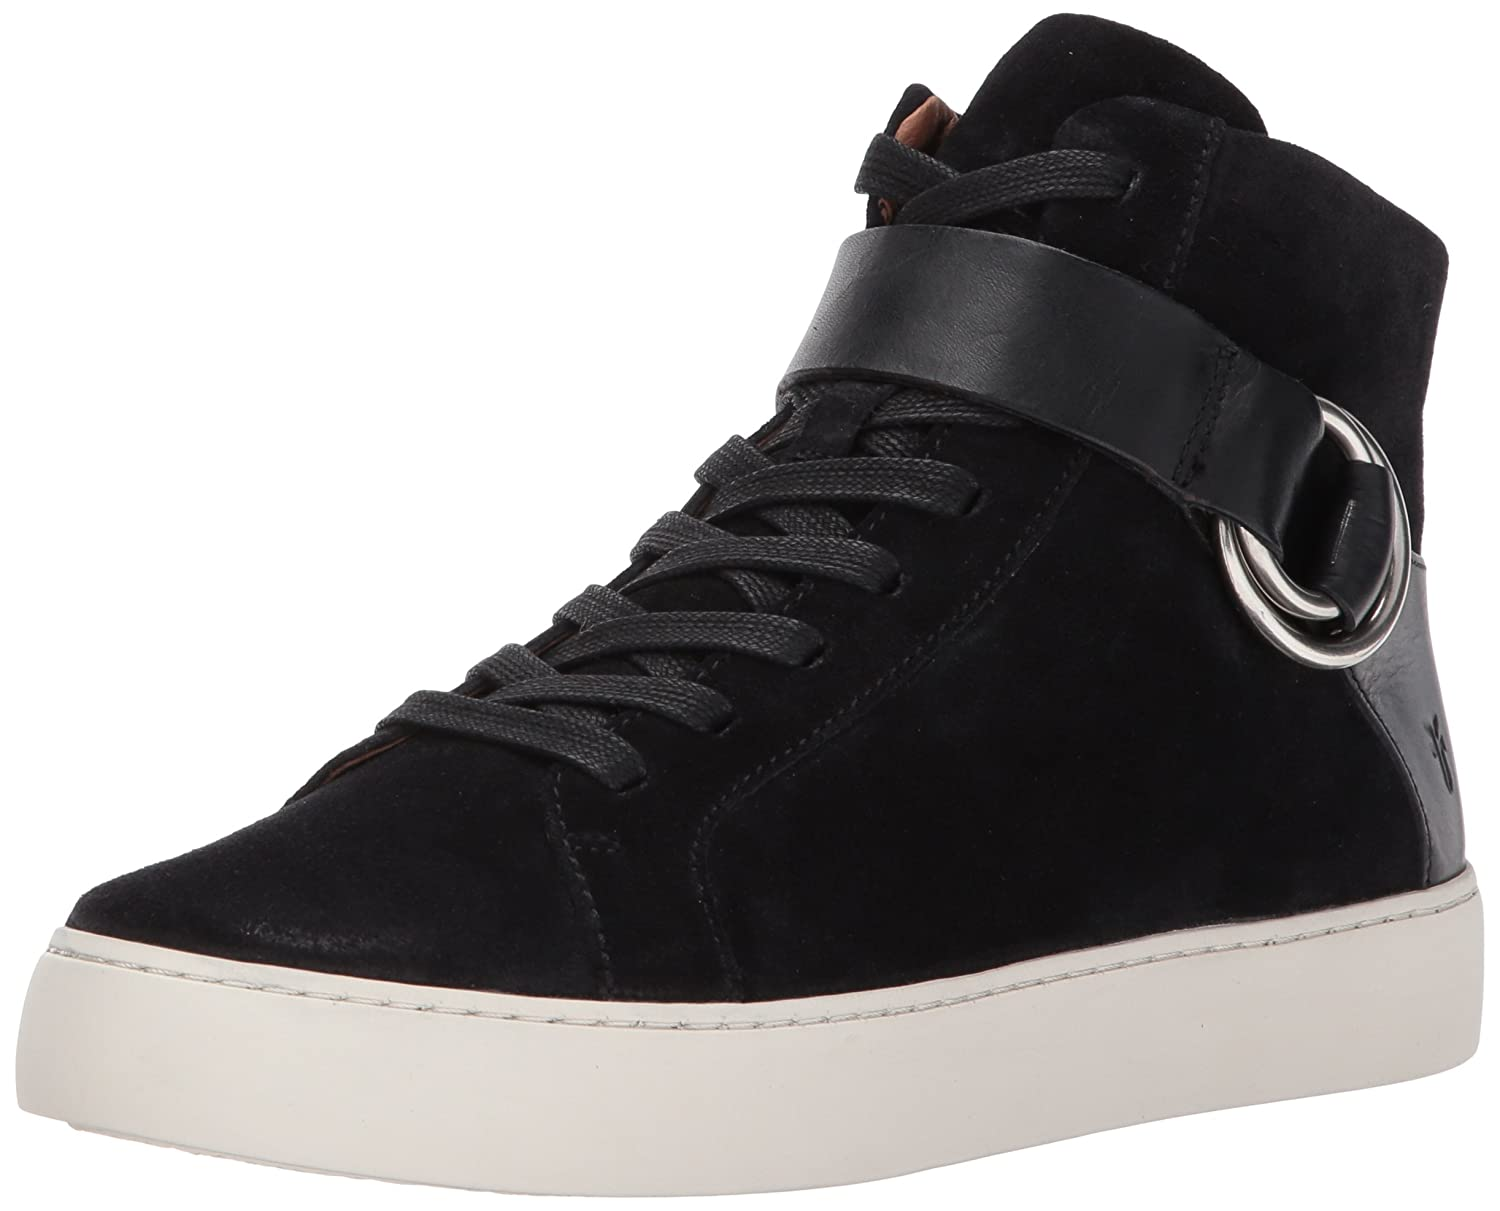 FRYE Women's Lena Harness High Fashion Sneaker B01N4GFG4A 10 B(M) US|Black Soft Oiled Suede